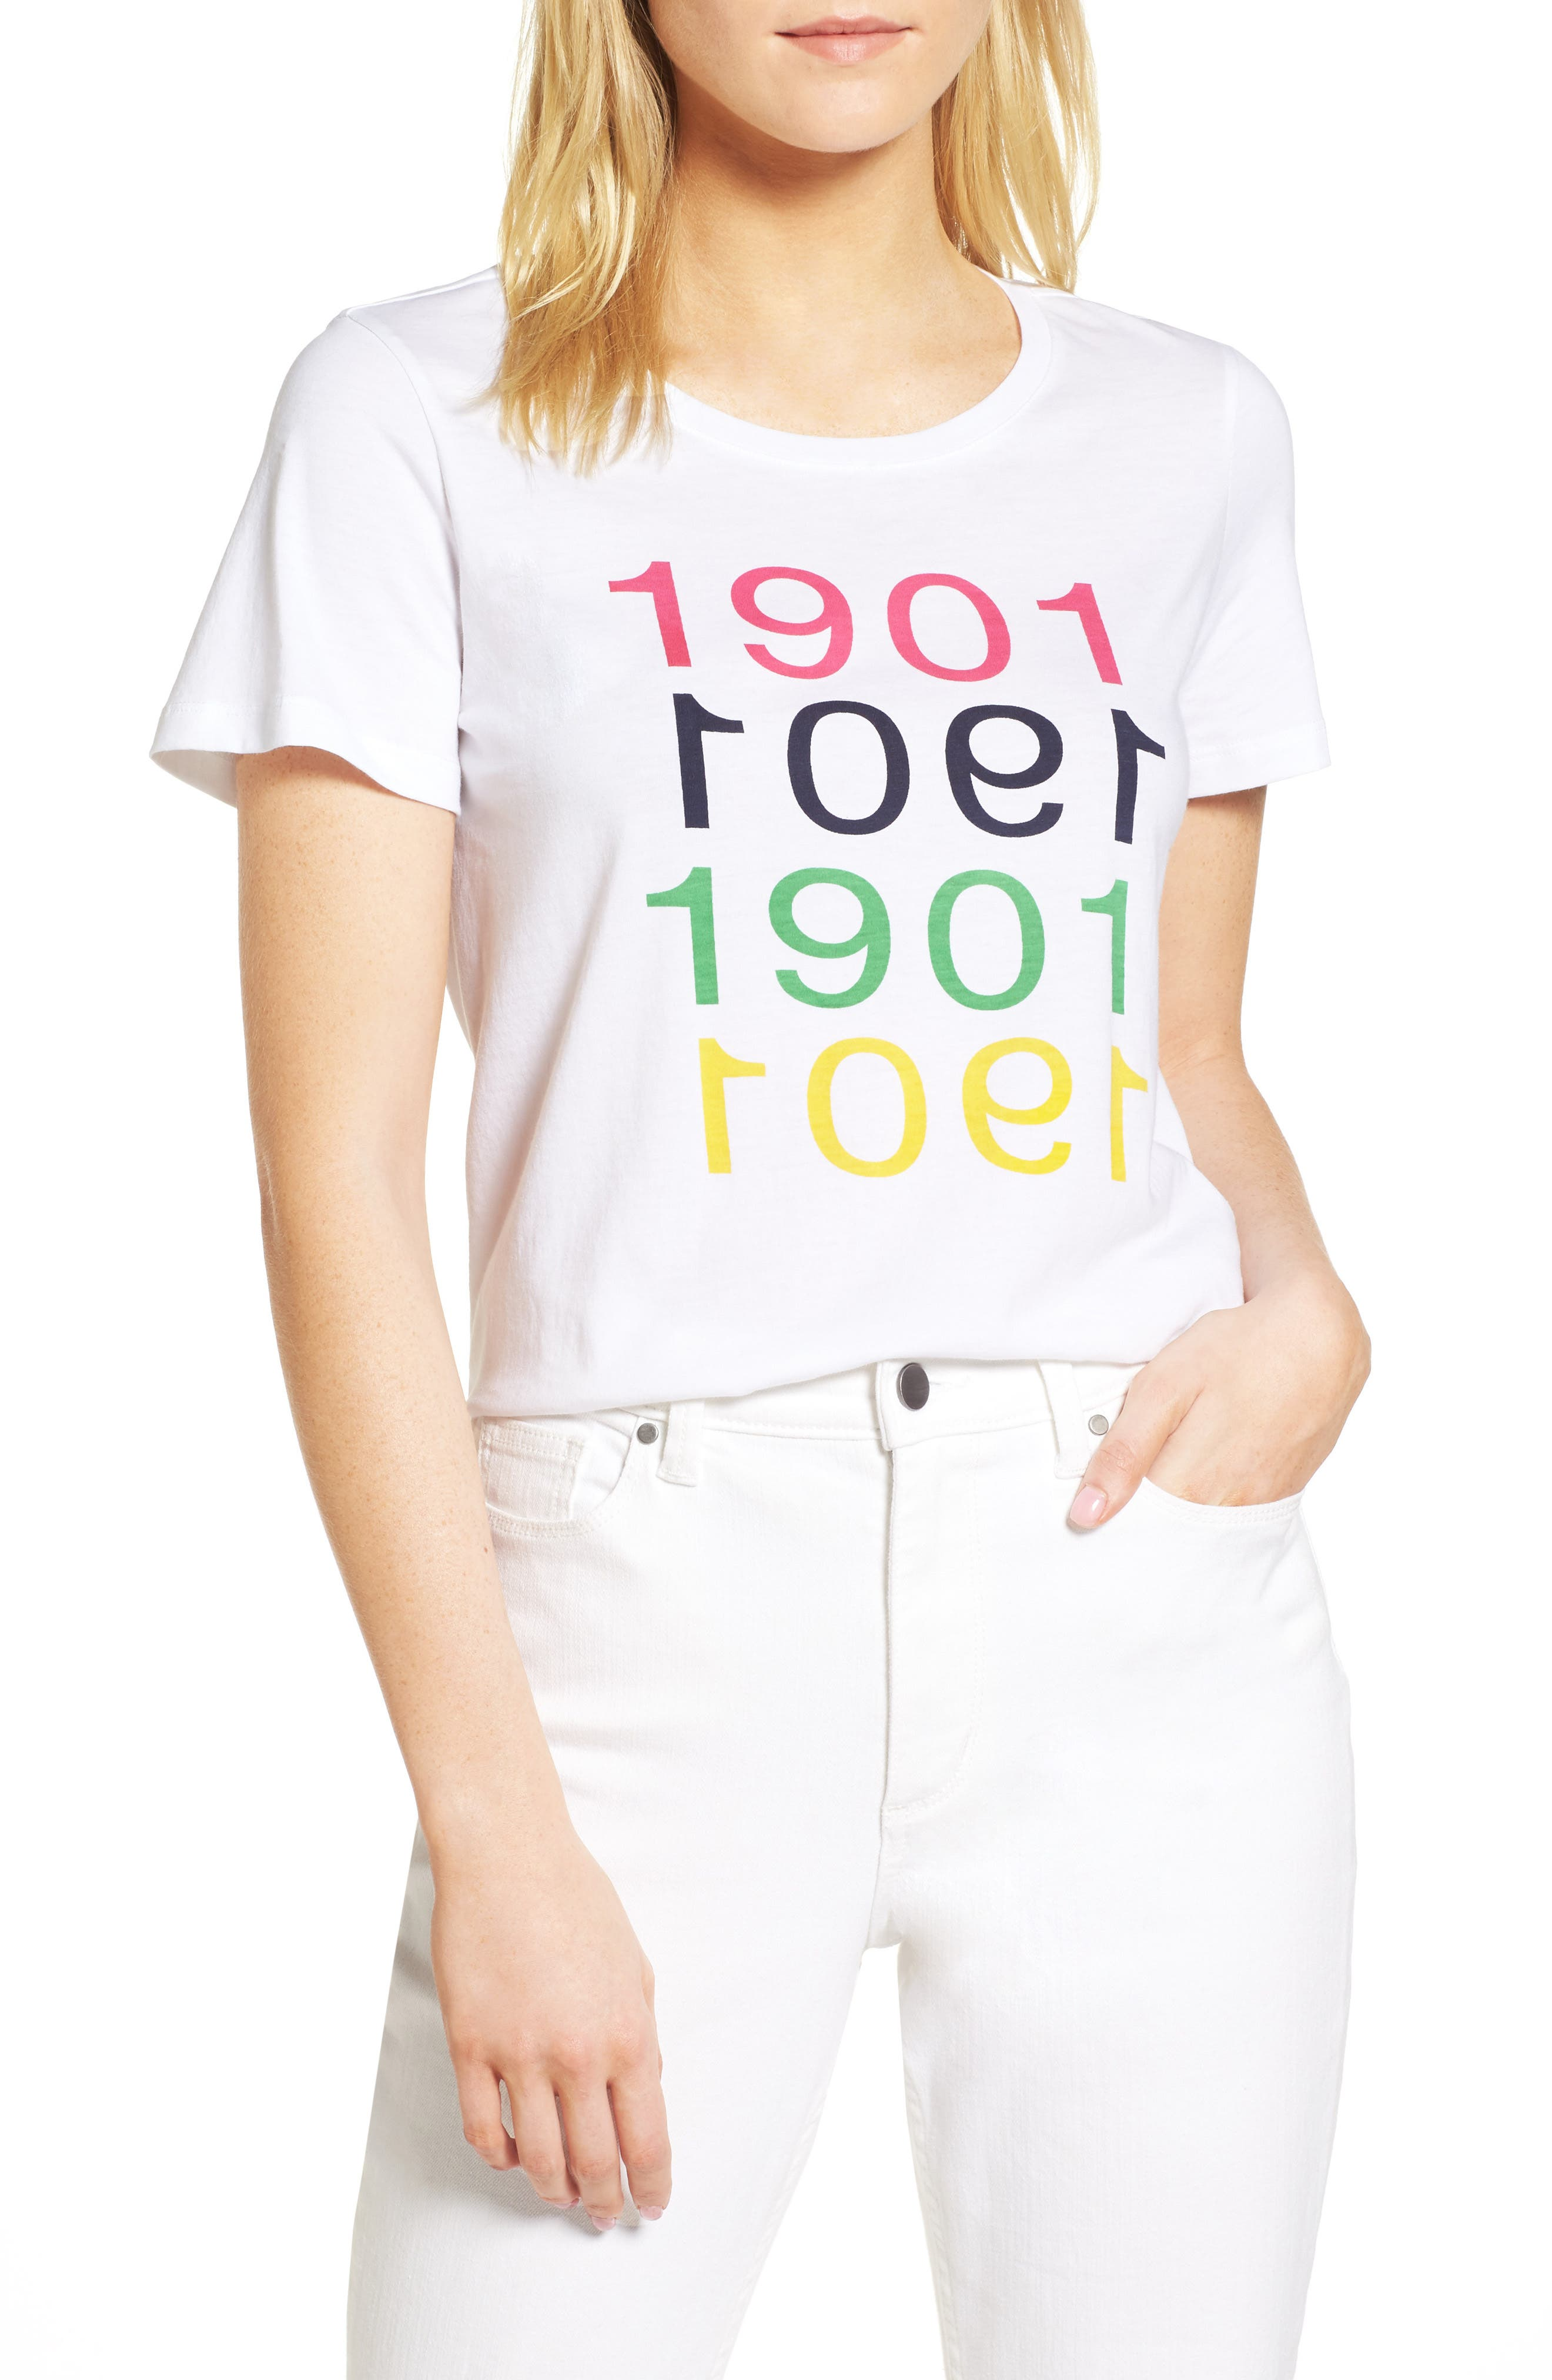 Short Sleeve Cotton Tee,                             Main thumbnail 1, color,                             White Multi 1901